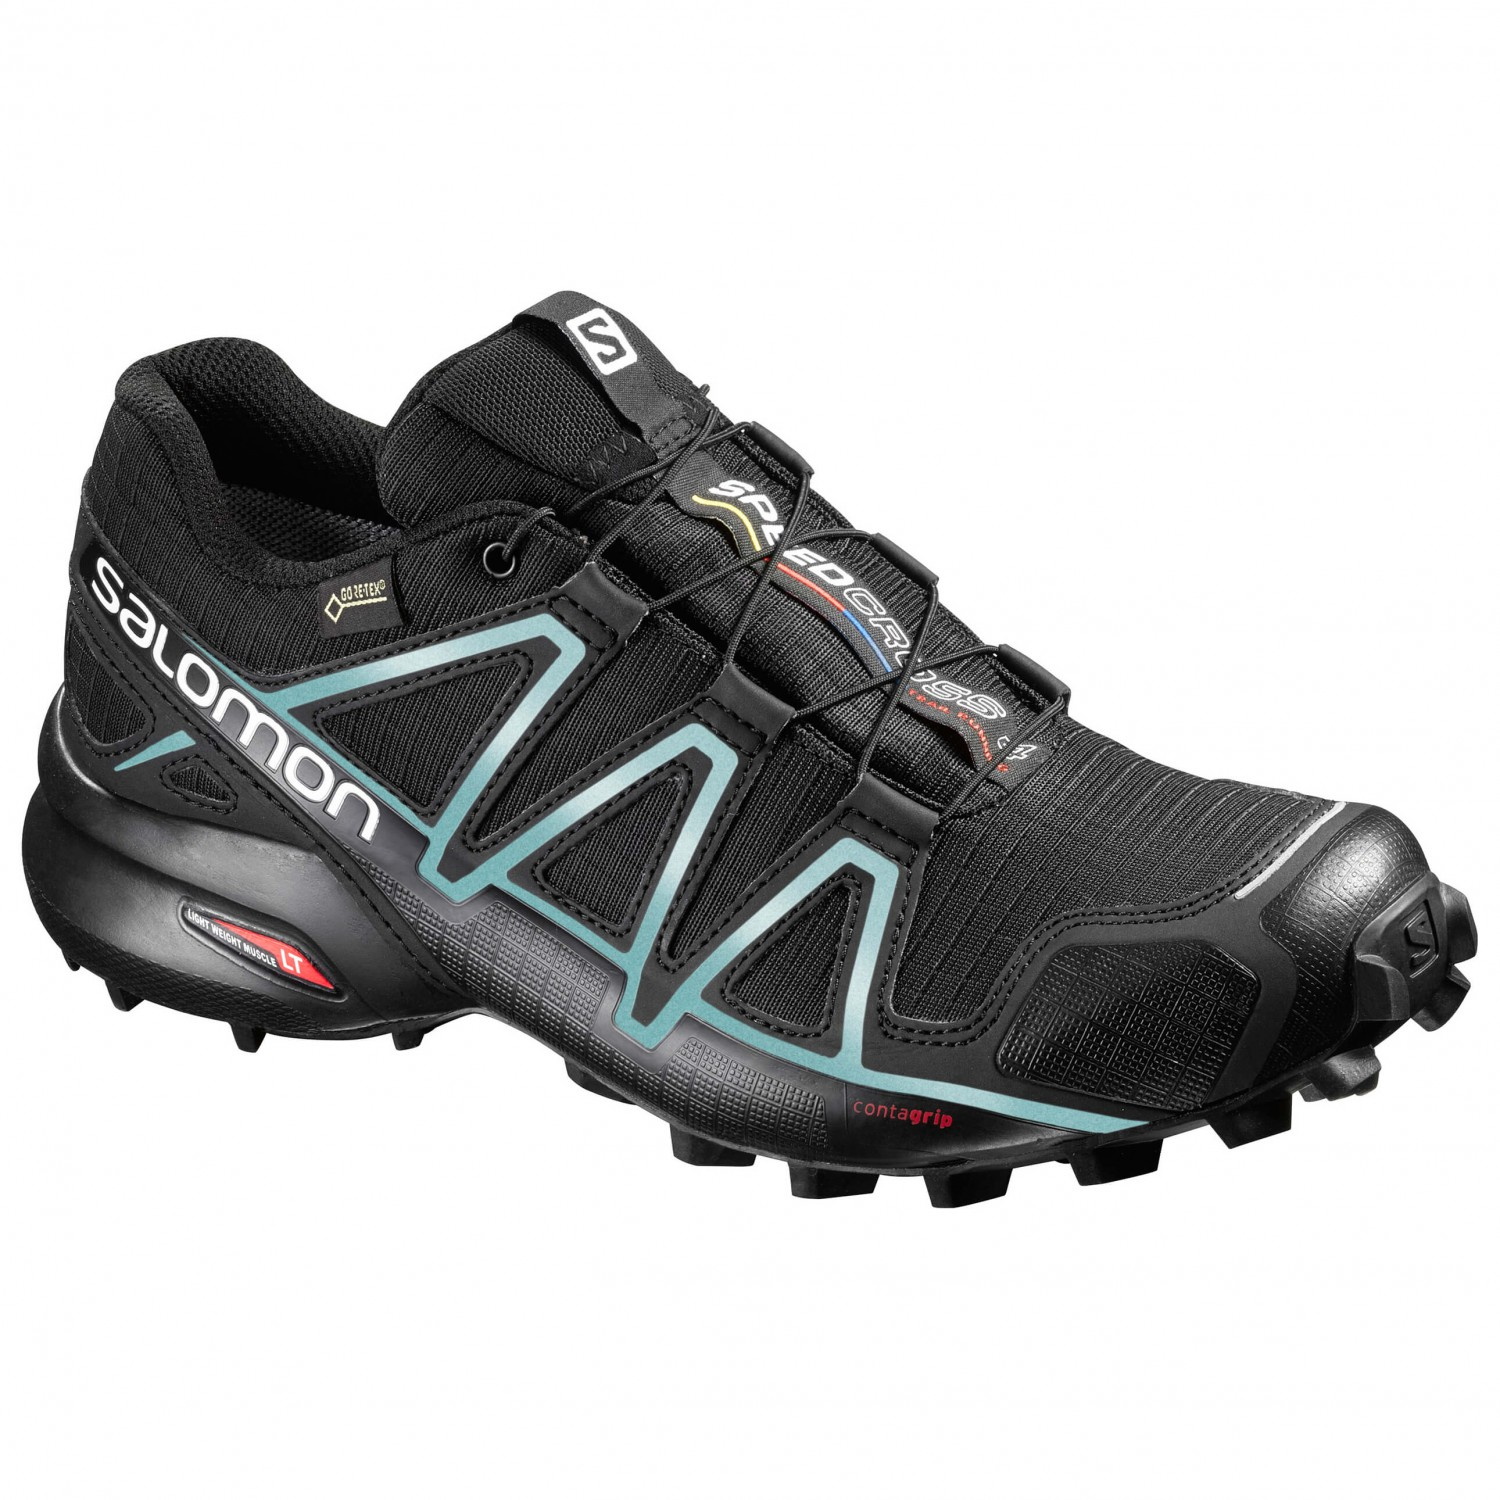 Salomon - Women's Speedcross 4 GTX - Trailrunningschuhe Black / Black / Metallic Bubble Blue